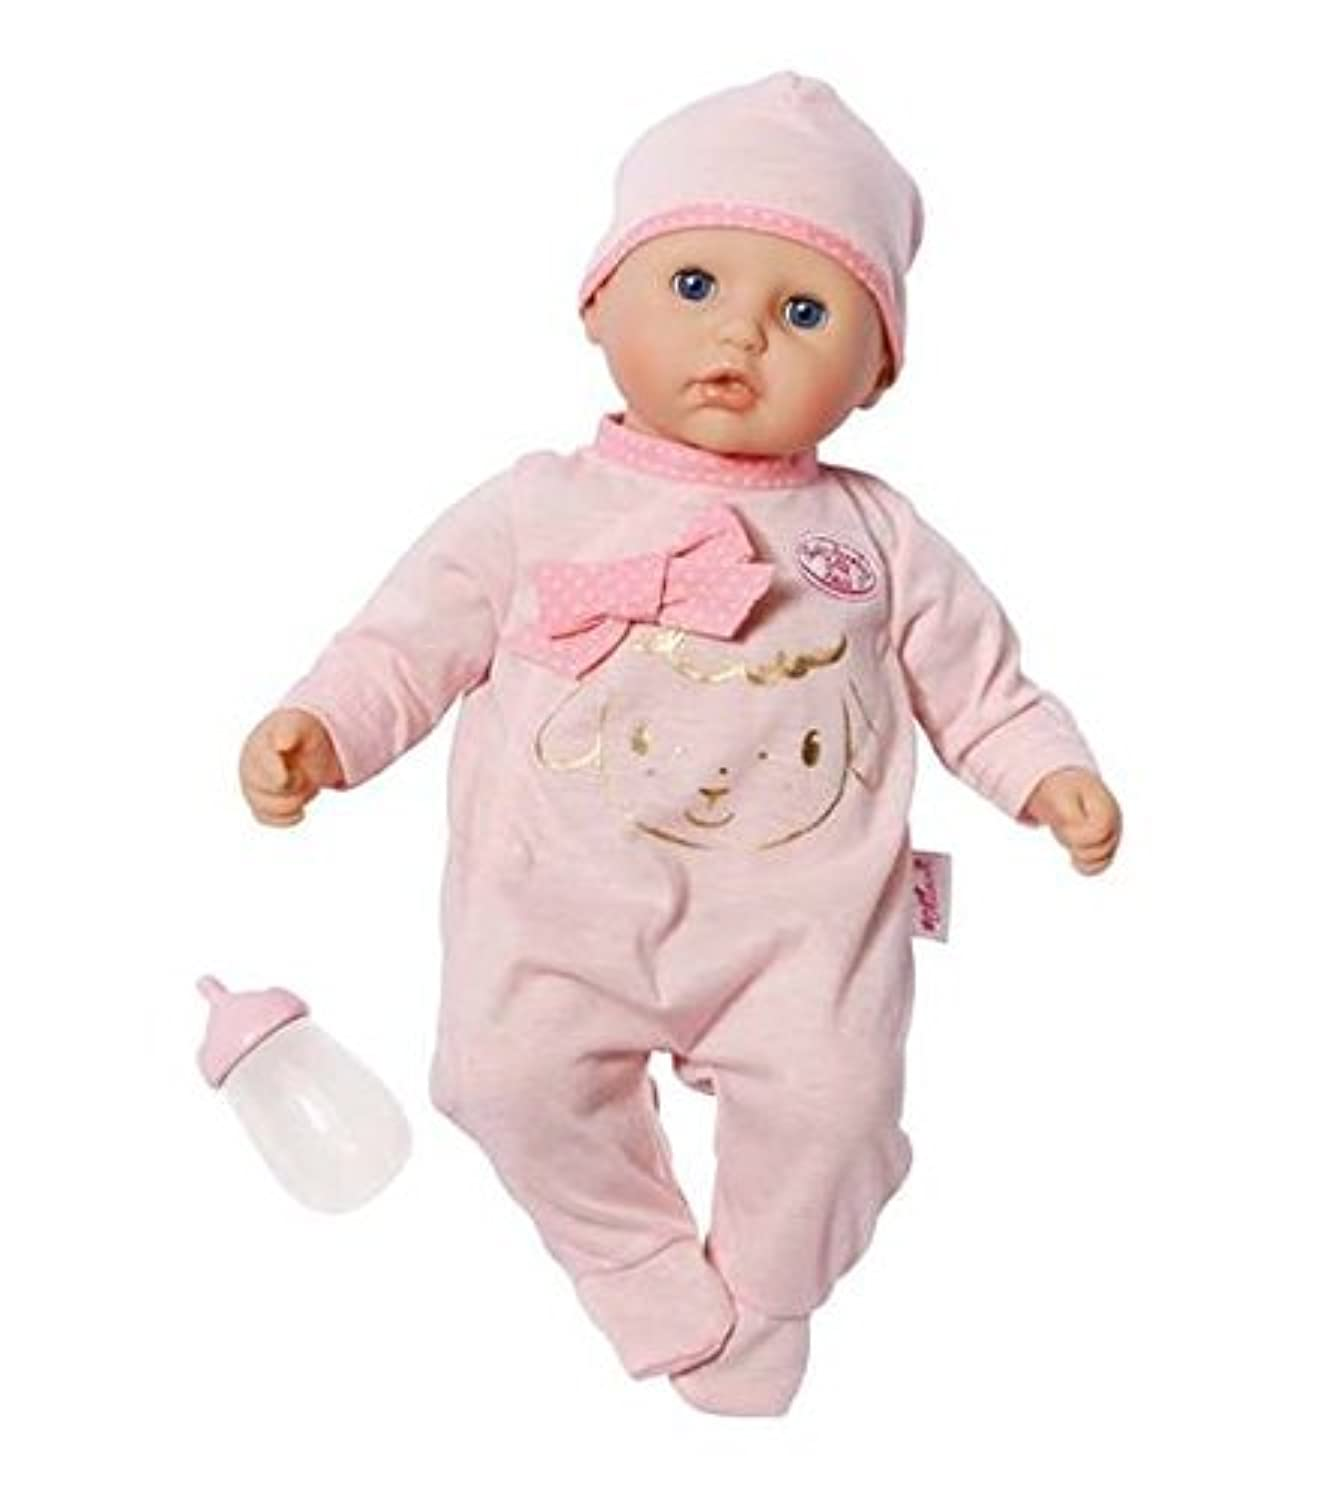 My First Baby Annabell Soft Doll by my first Baby Annabell [並行輸入品]